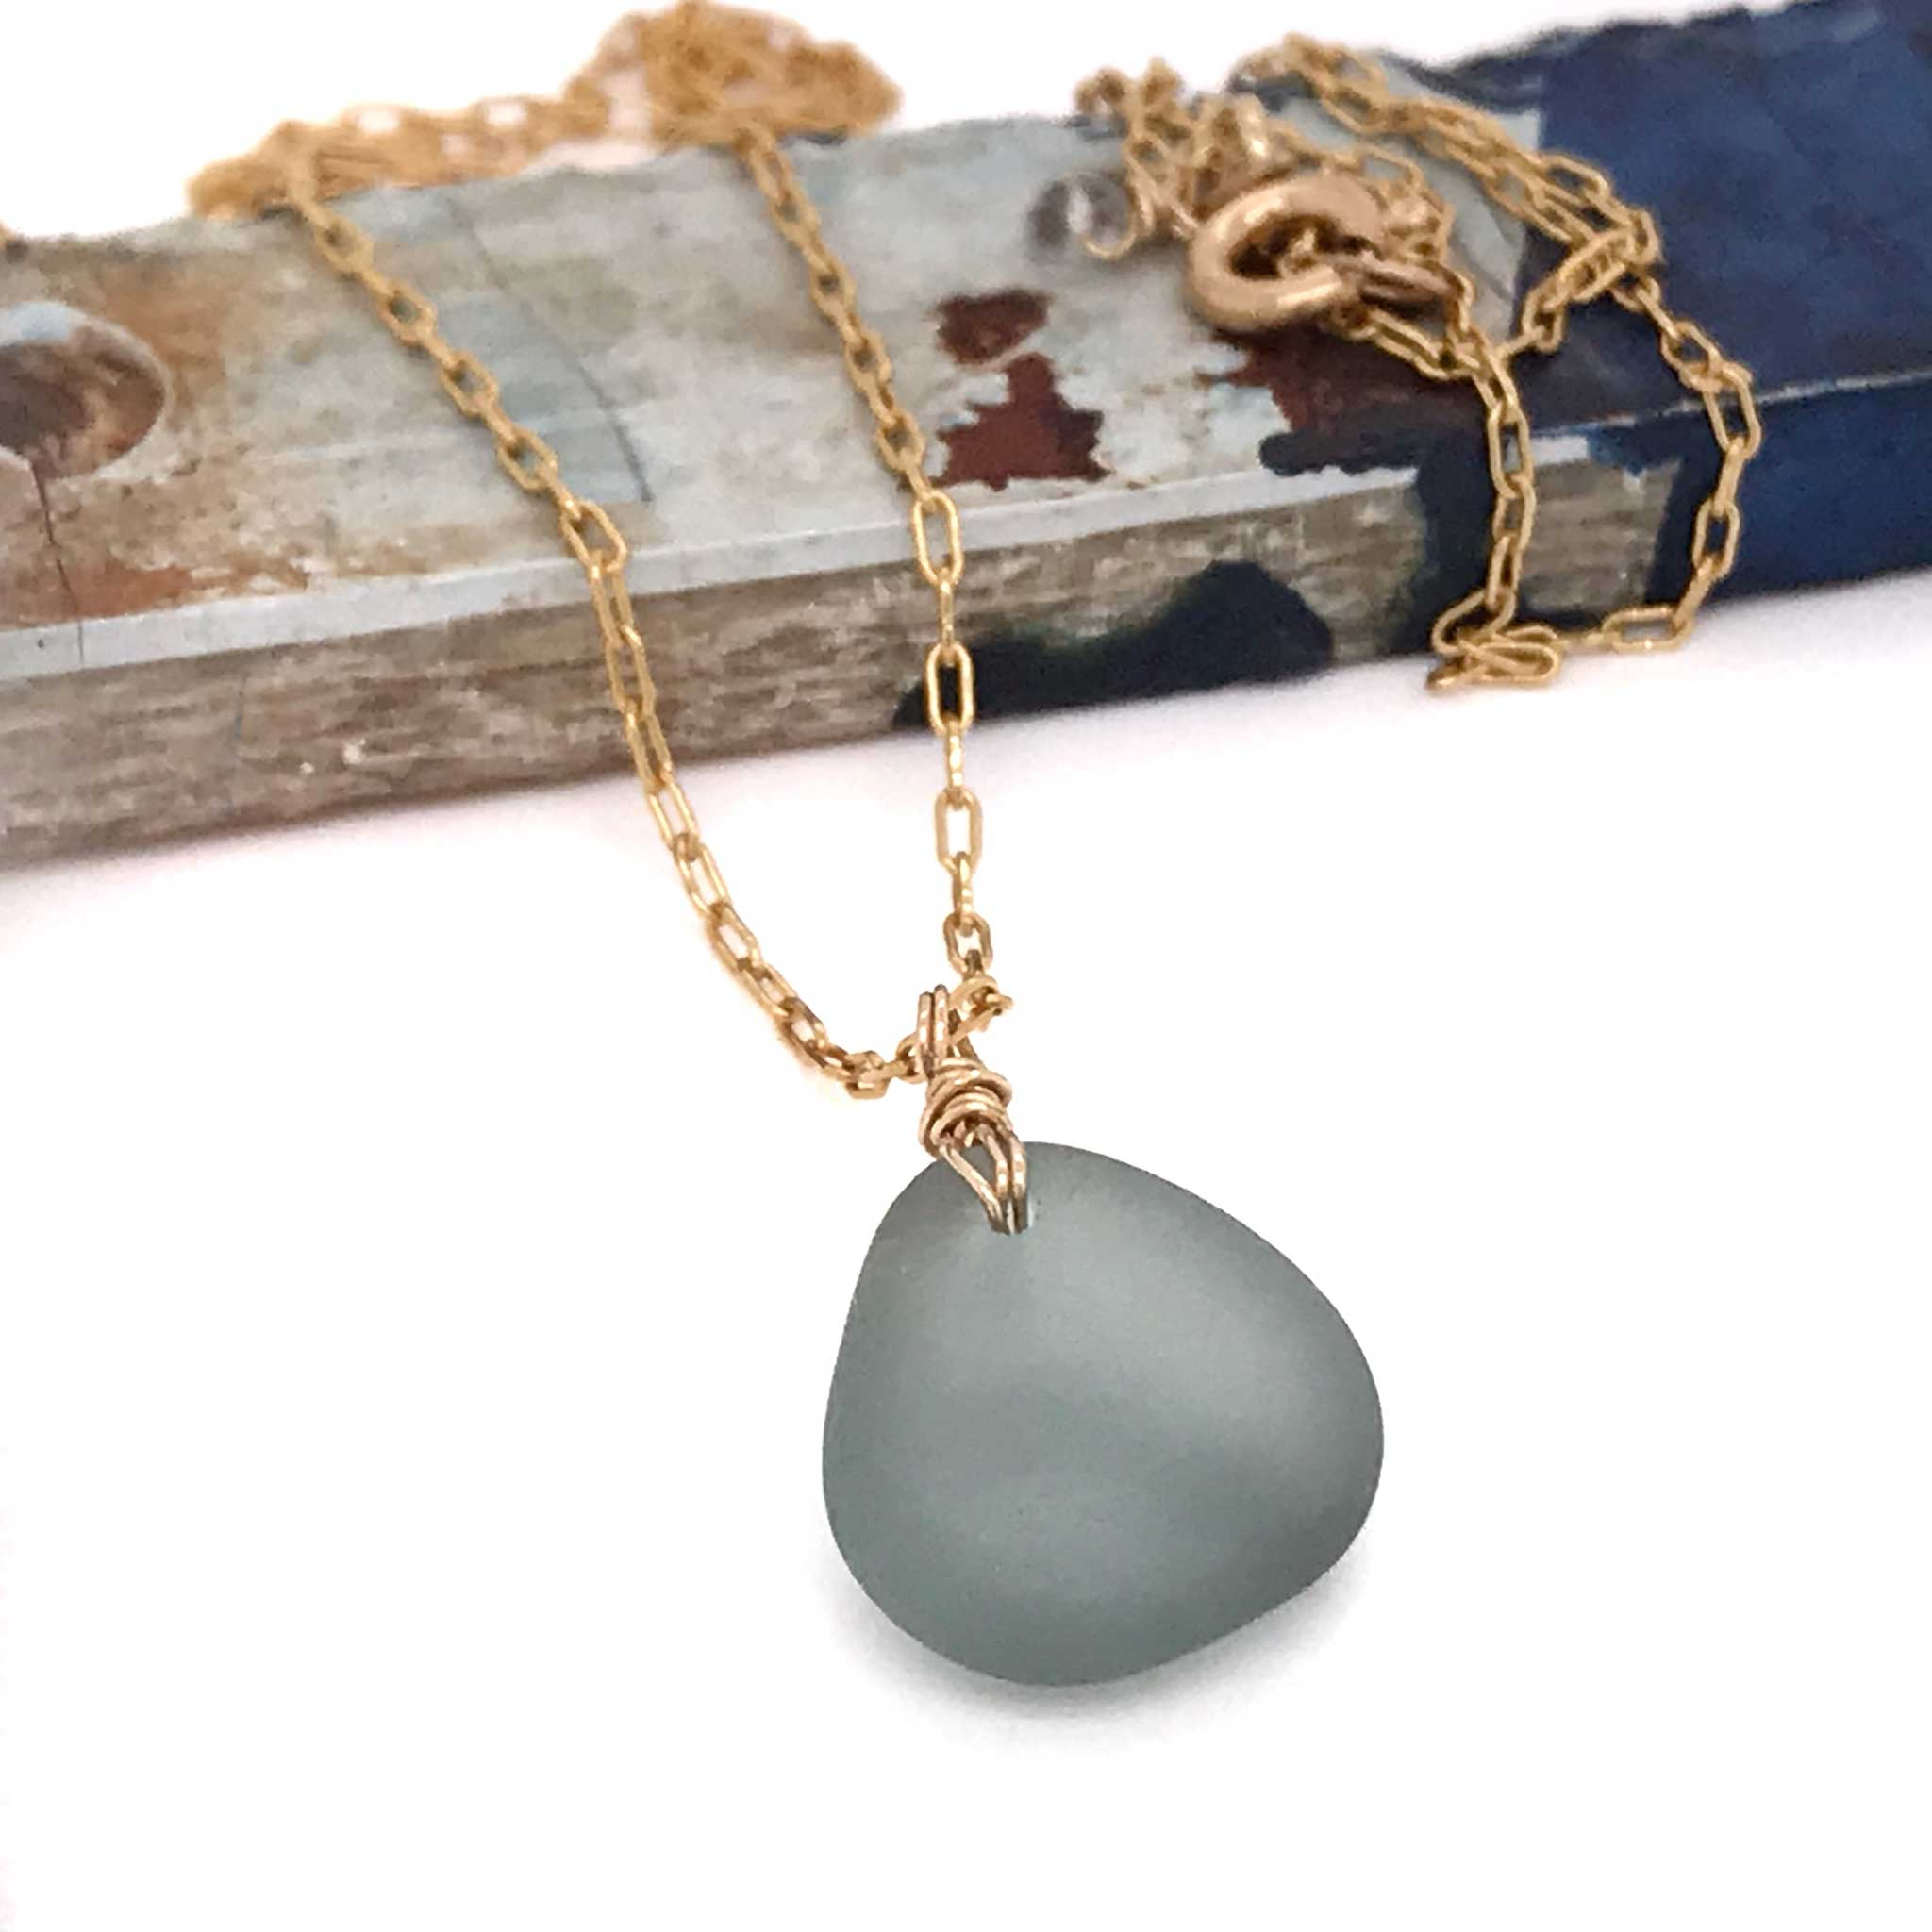 grey necklace beach glass on gold chain kriket broadhurst unique gifts for women Sydney